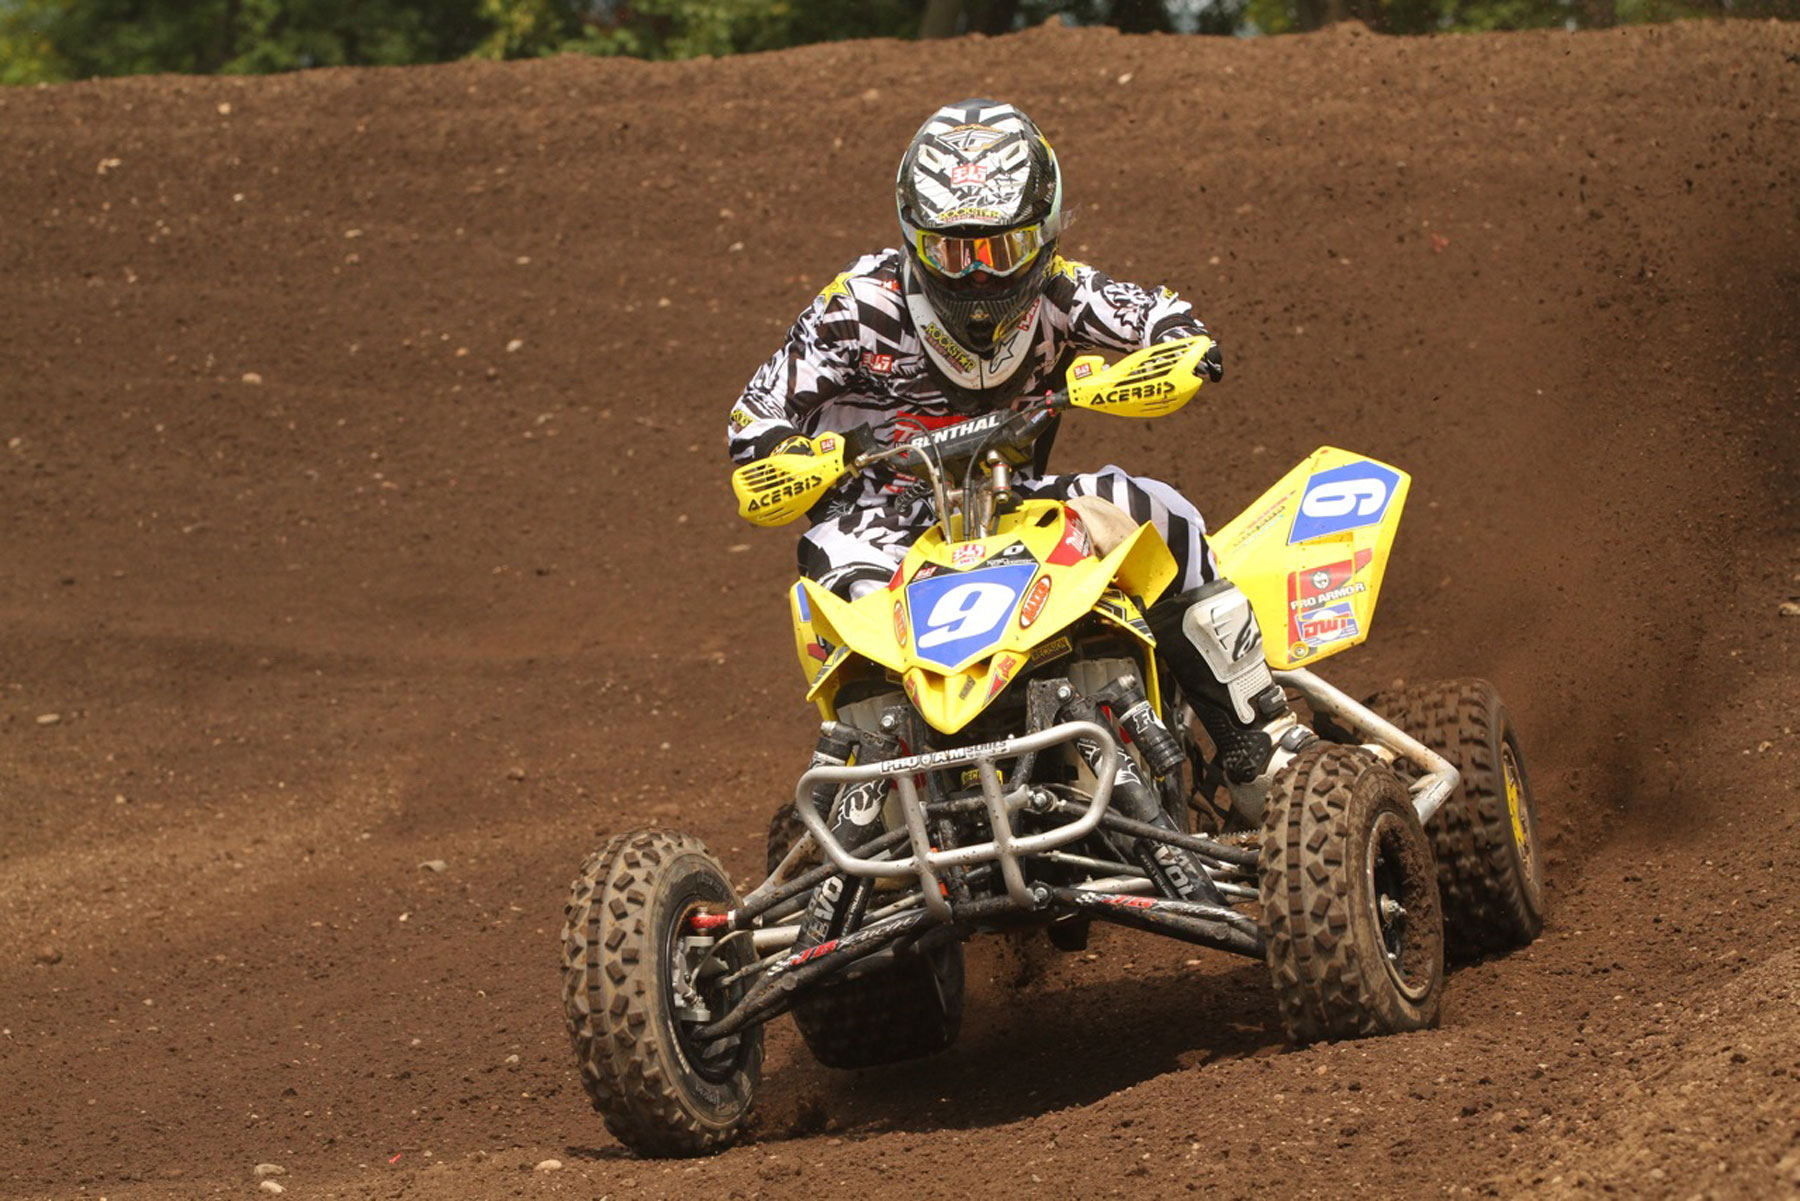 MAKITA'S JOSH CREAMER CLOSES IN ON THE ATV CHAMPIONSHIP AT RED BUD